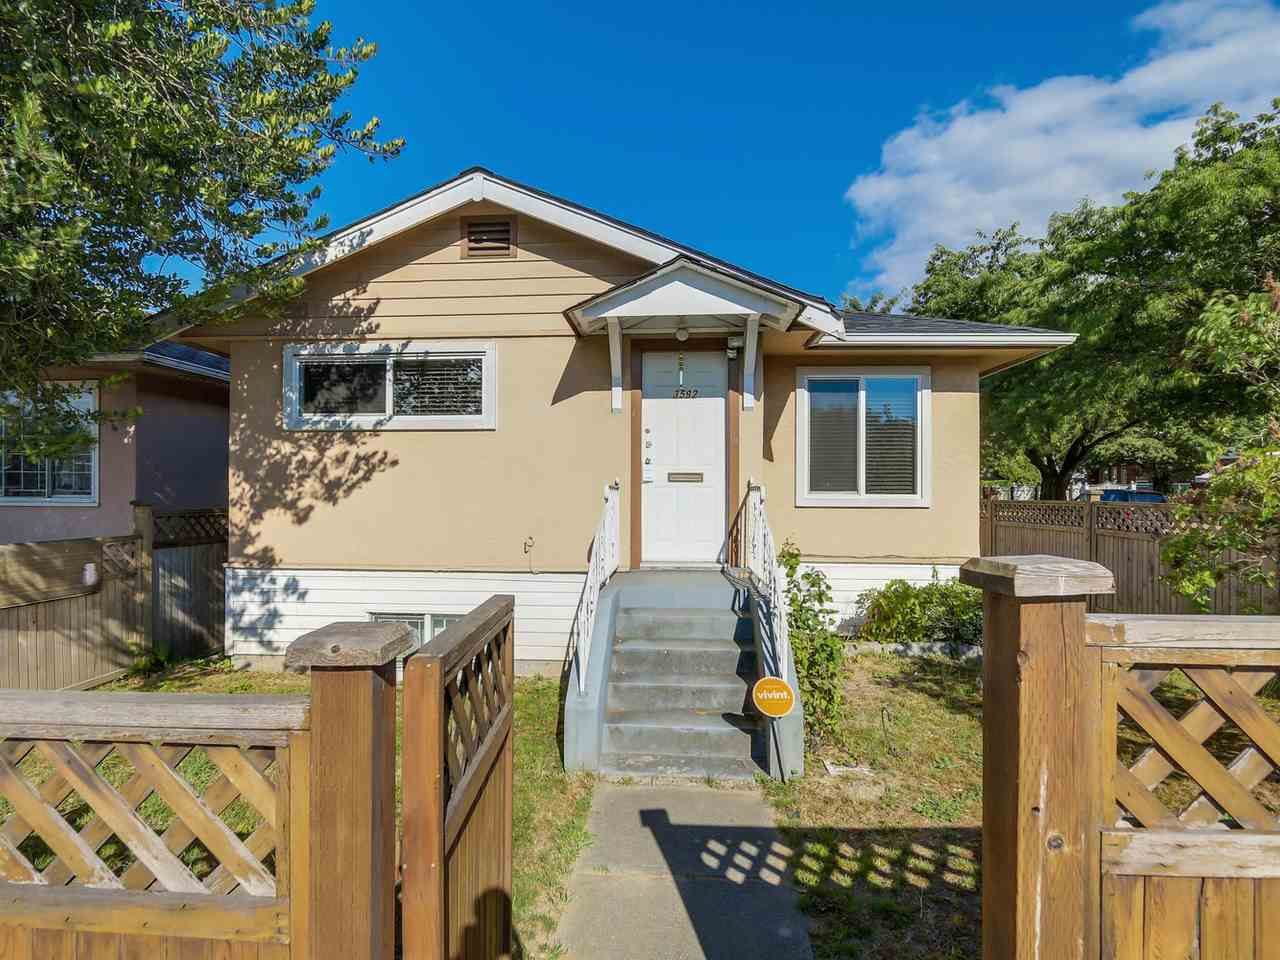 Main Photo: 3592 KNIGHT Street in Vancouver: Knight House for sale (Vancouver East)  : MLS®# R2119614